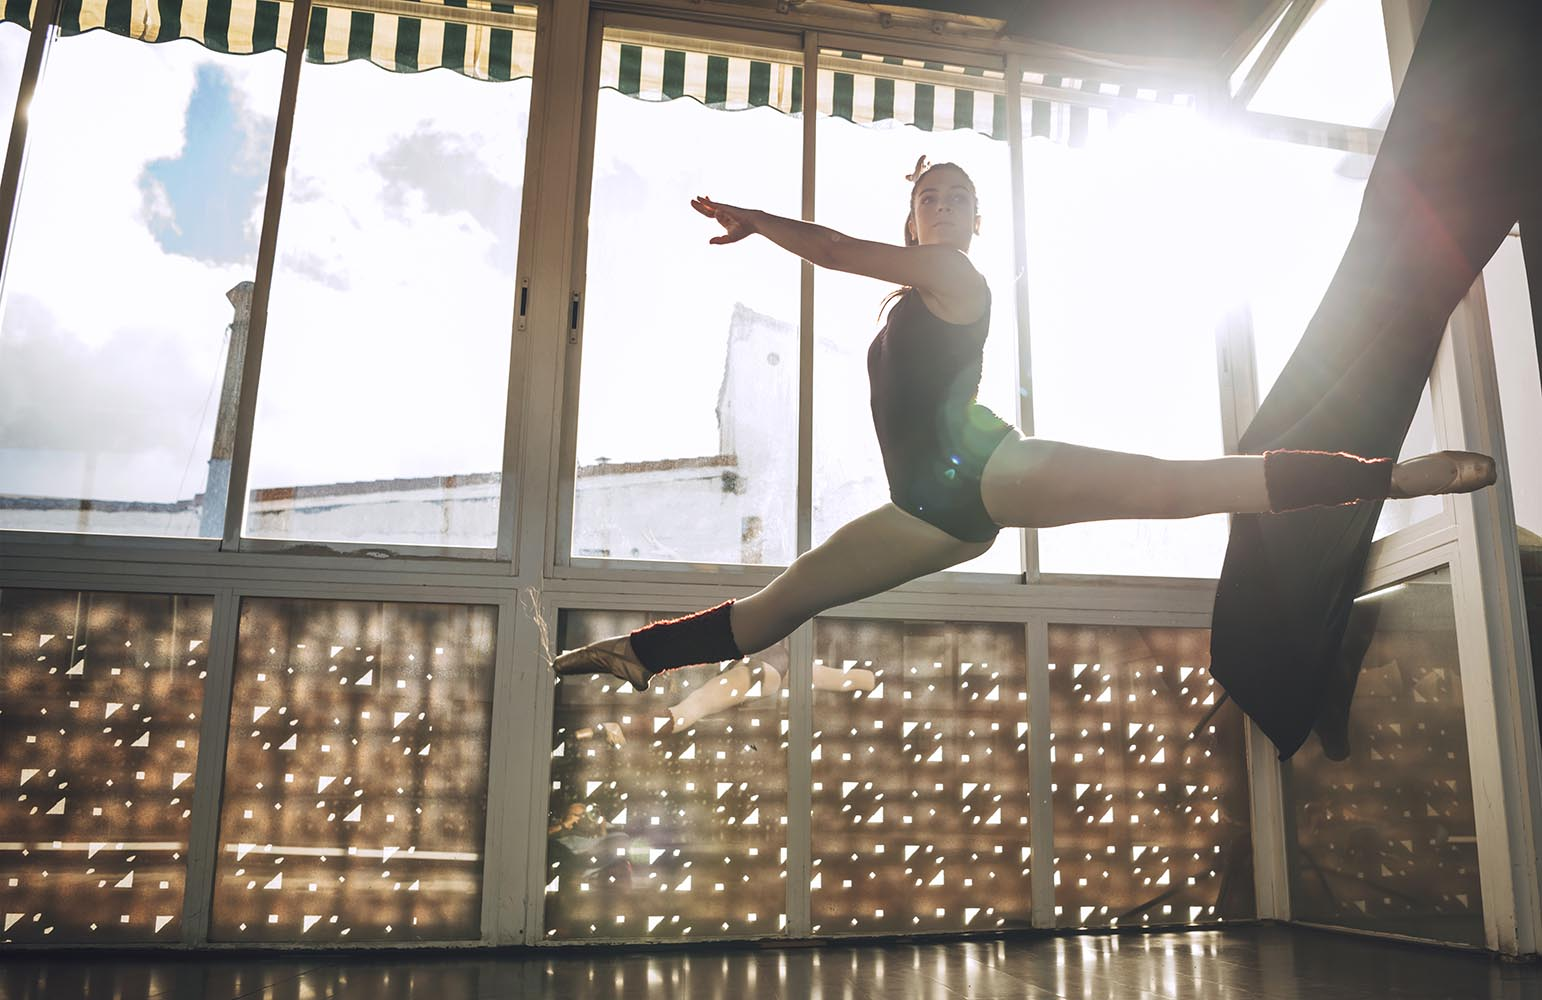 Dancer flying in jump above ground